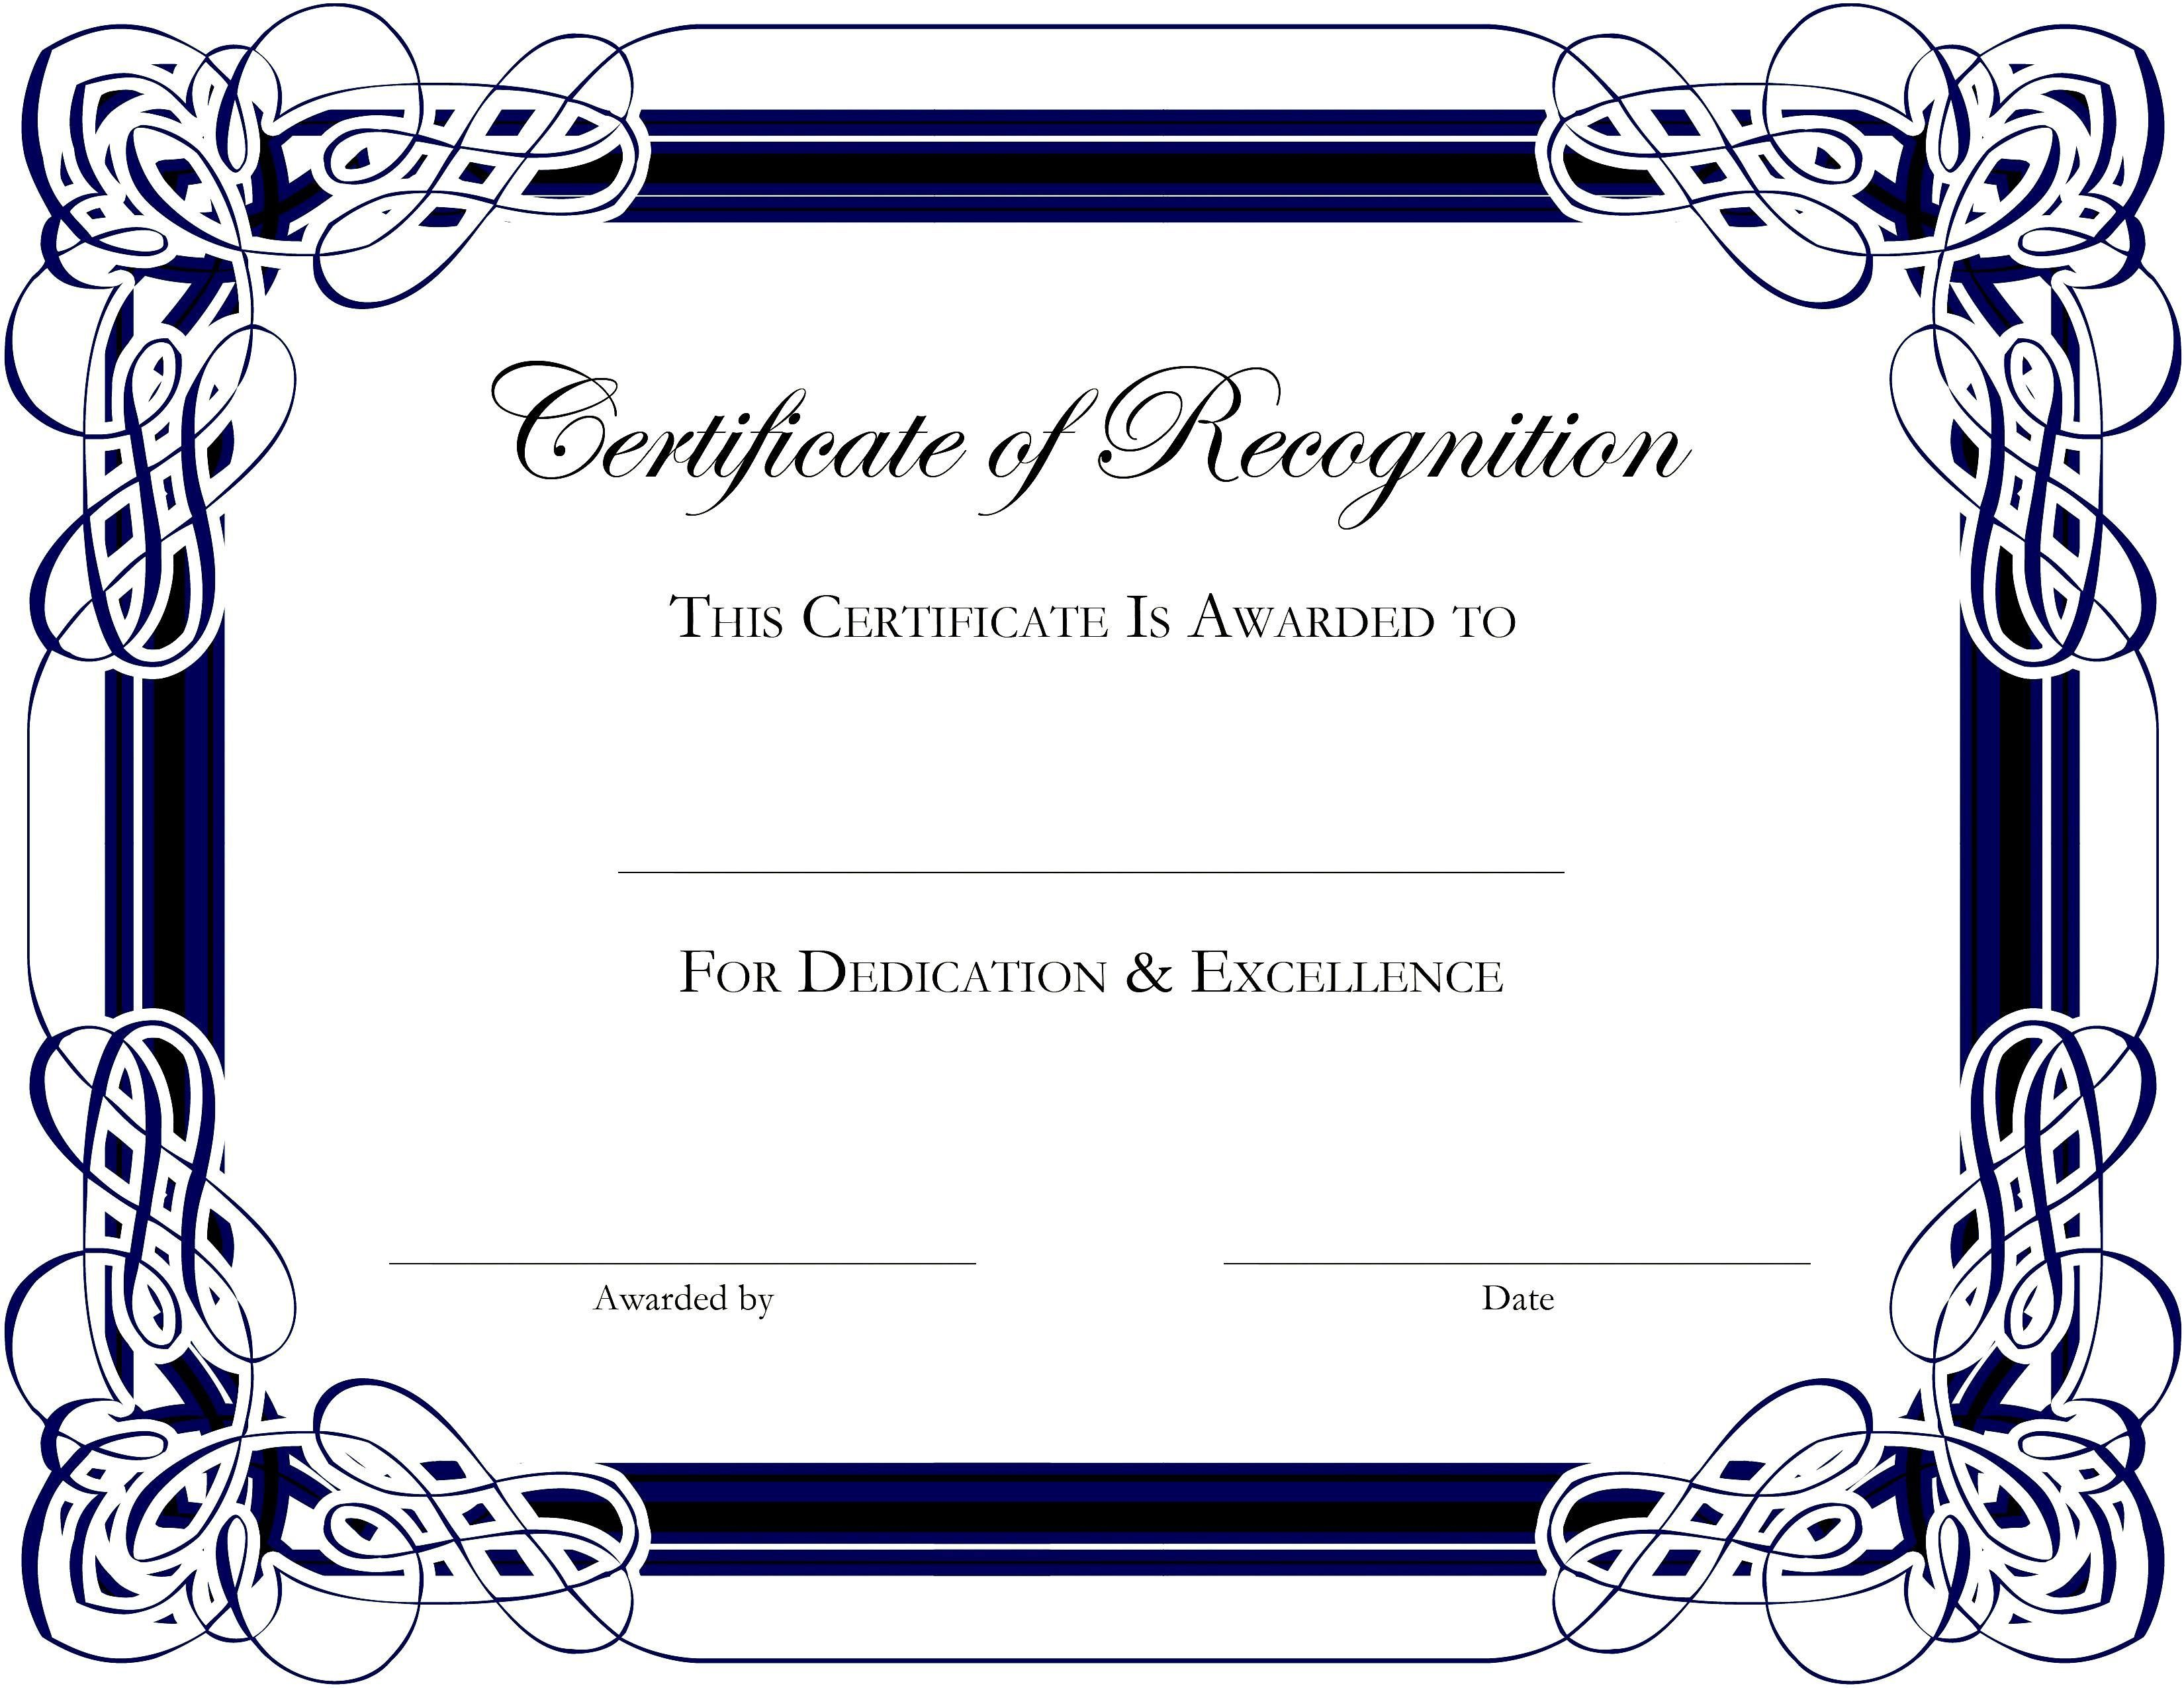 000 Top Microsoft Publisher Free Template Concept  Certificate Download M MagazineFull